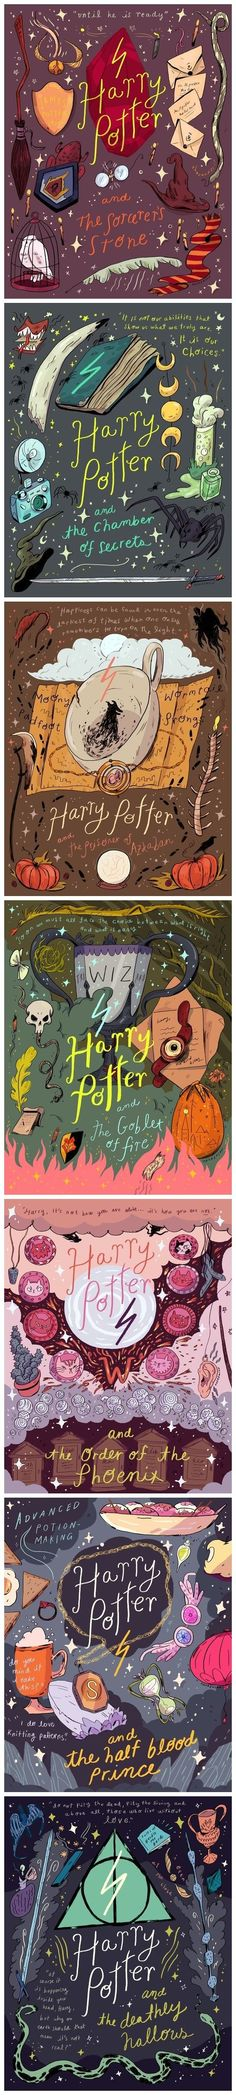 Harry Potter and the Philosophal Stone ----- Harry Potter and the Deathly Hallows (1-----7)